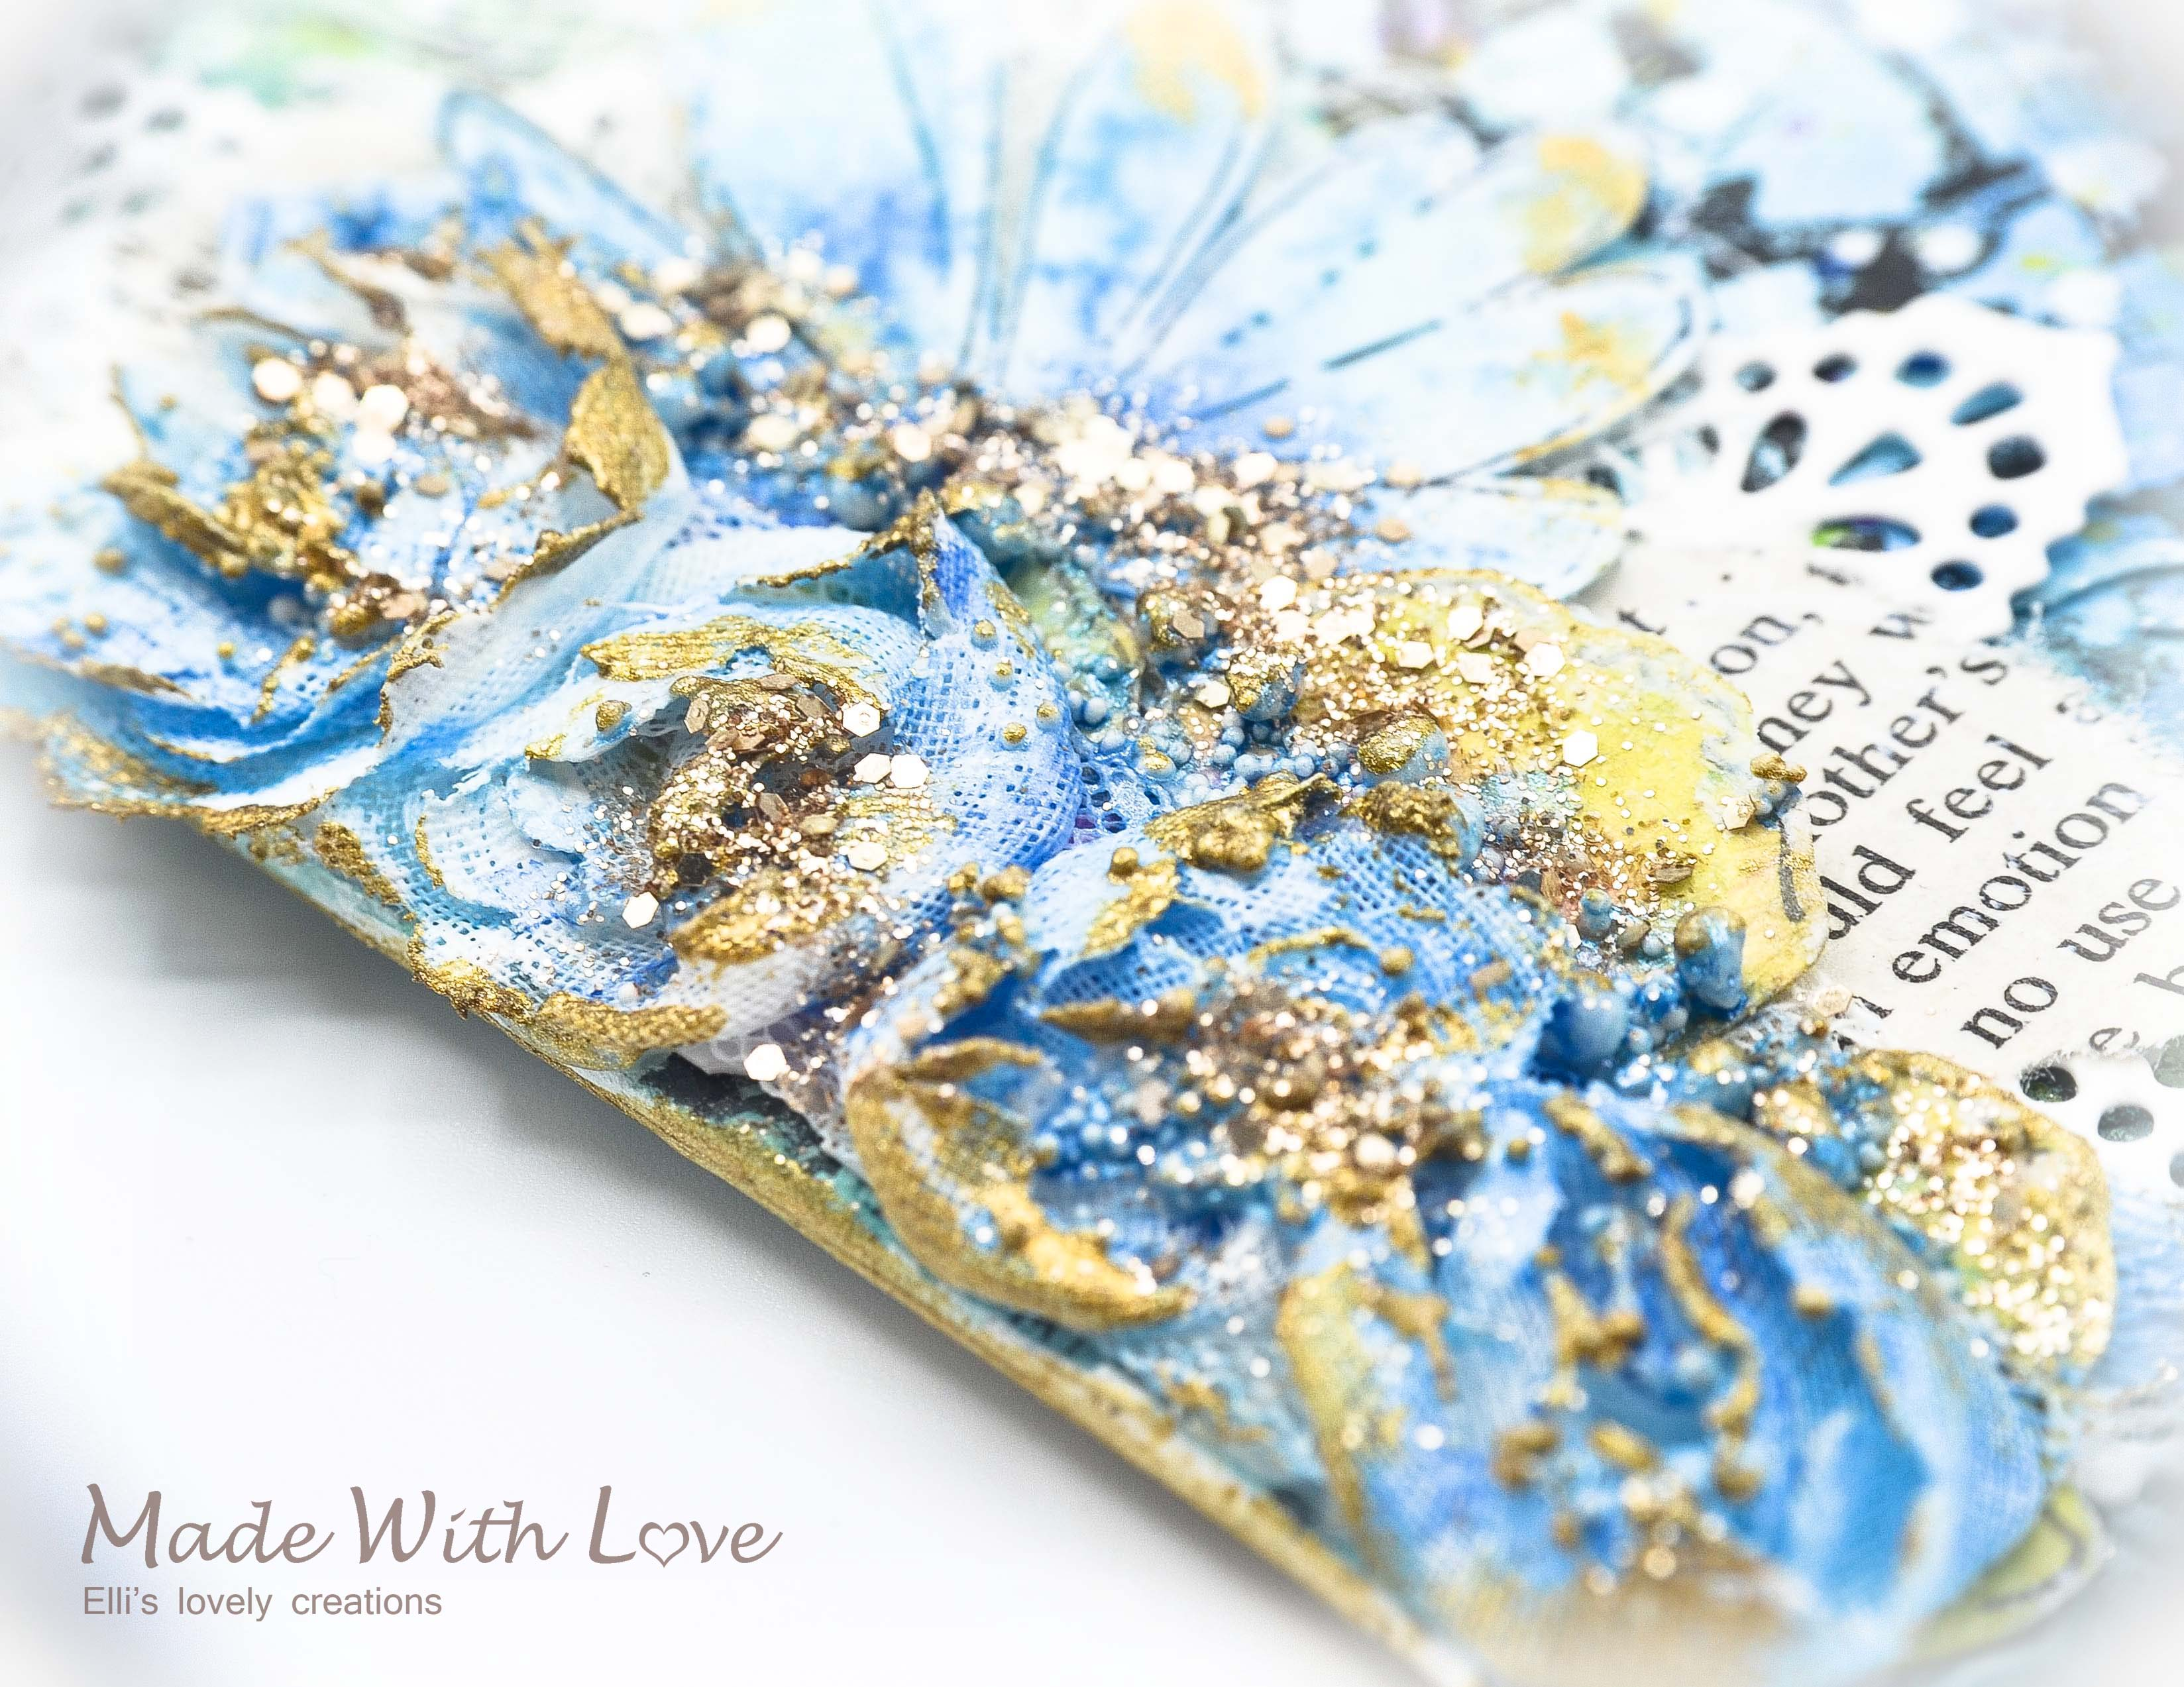 Mixed Media Summer Garden Wedding Album Cover Enjoy 0054